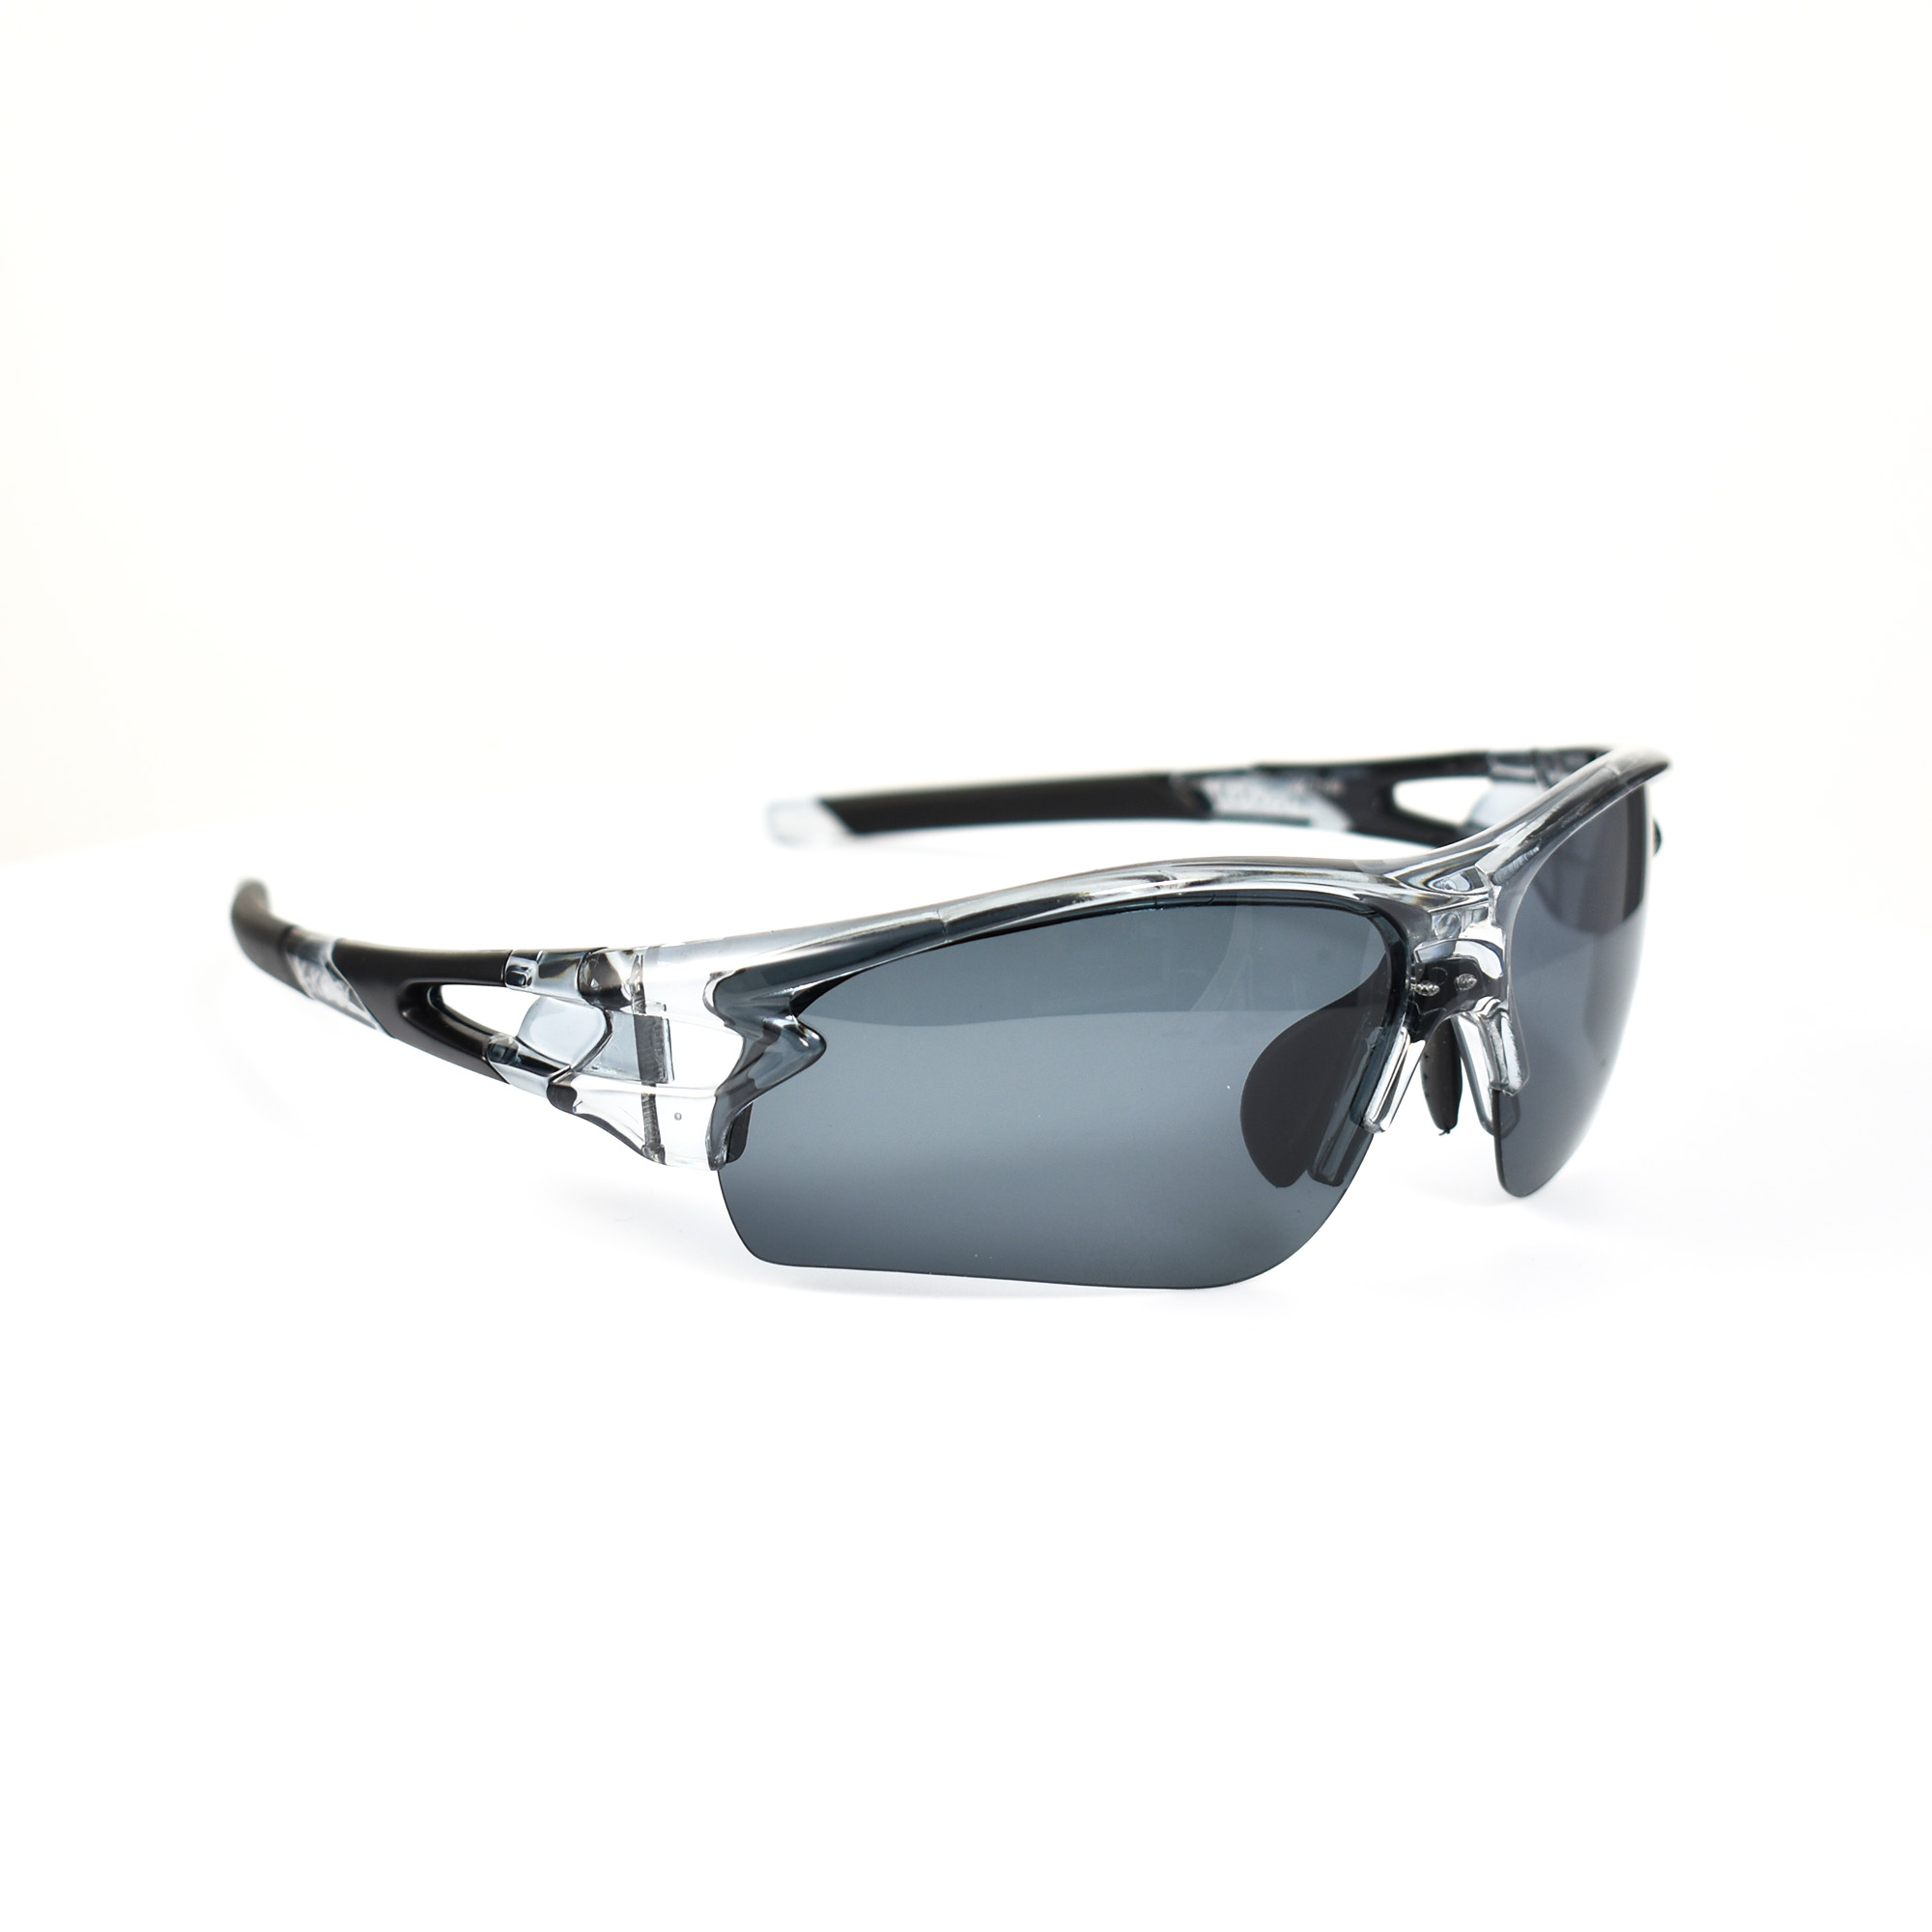 Victoro Sports Polarized Sunglasses